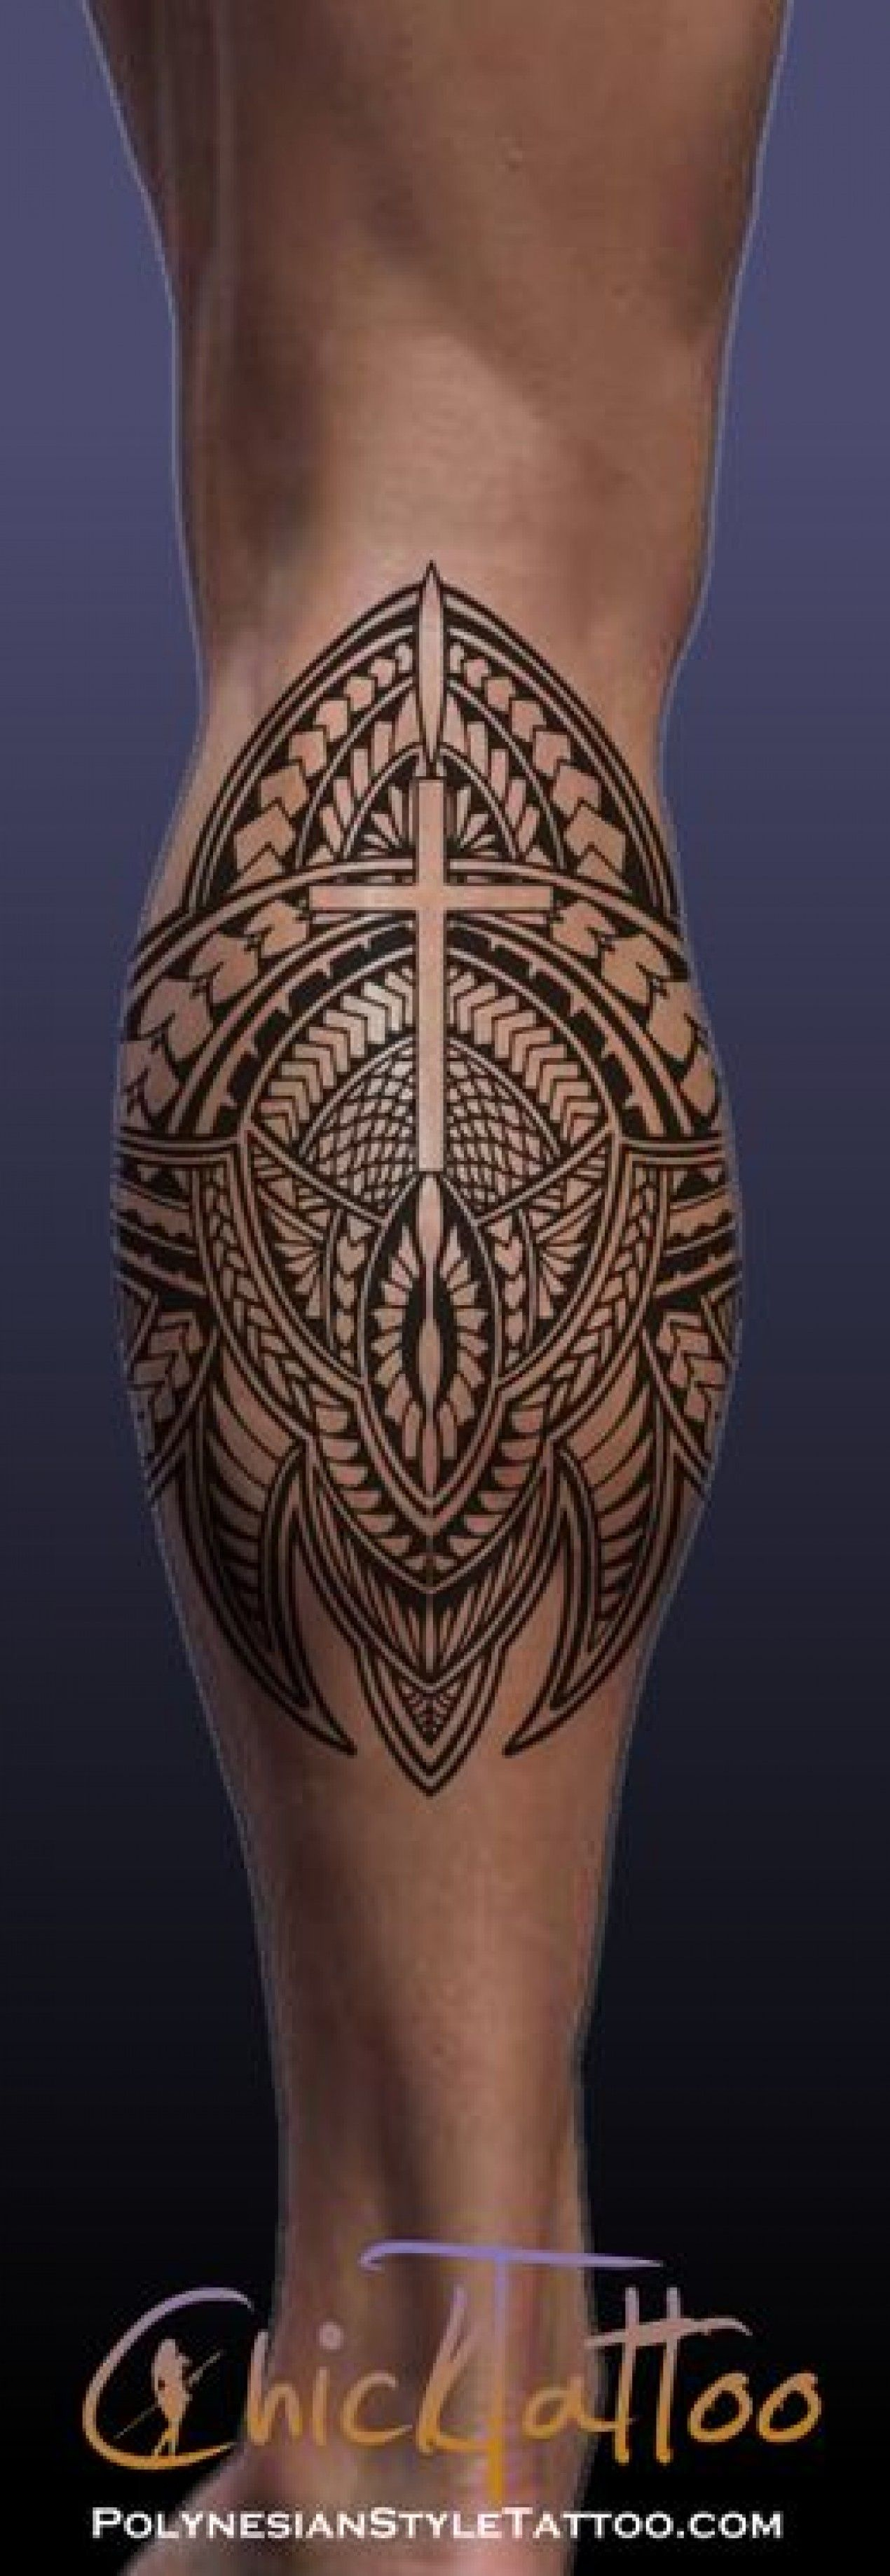 Photo De Tatouage Polynesien Mollet Patoche Pinterest Tatouage